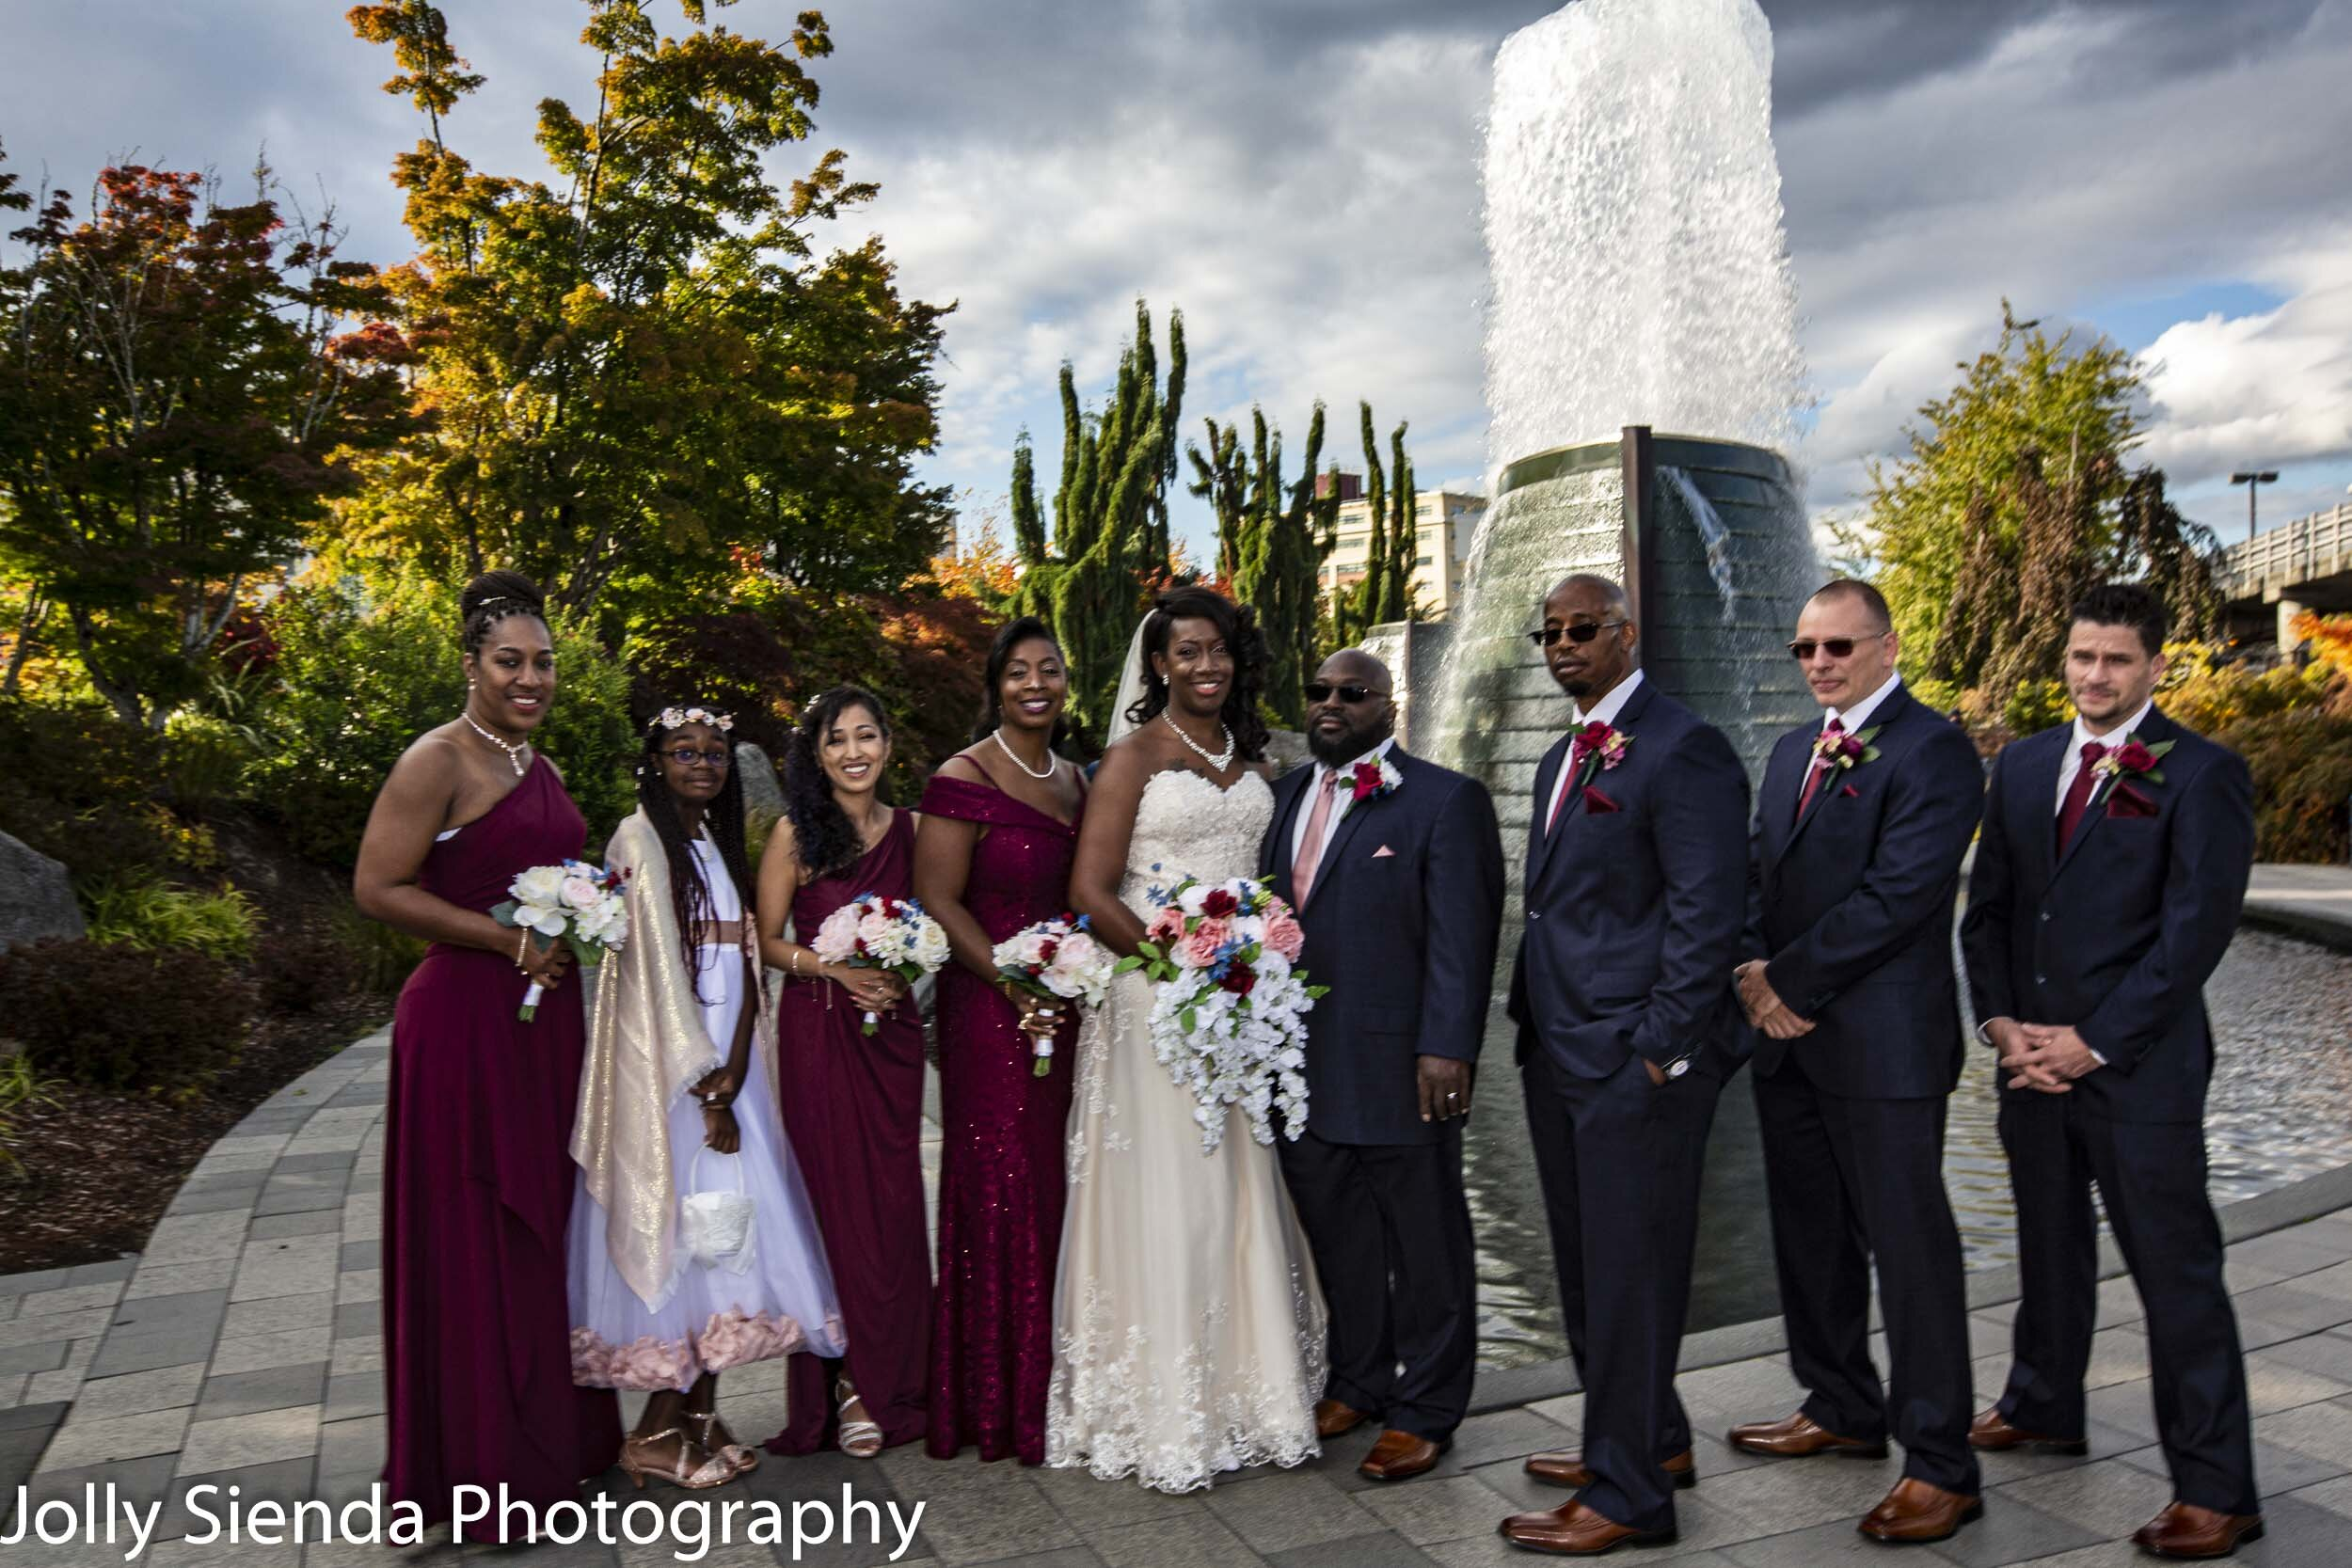 The bride and groom with their wedding party at Harborside Fountain Park, Bremerton, WA.